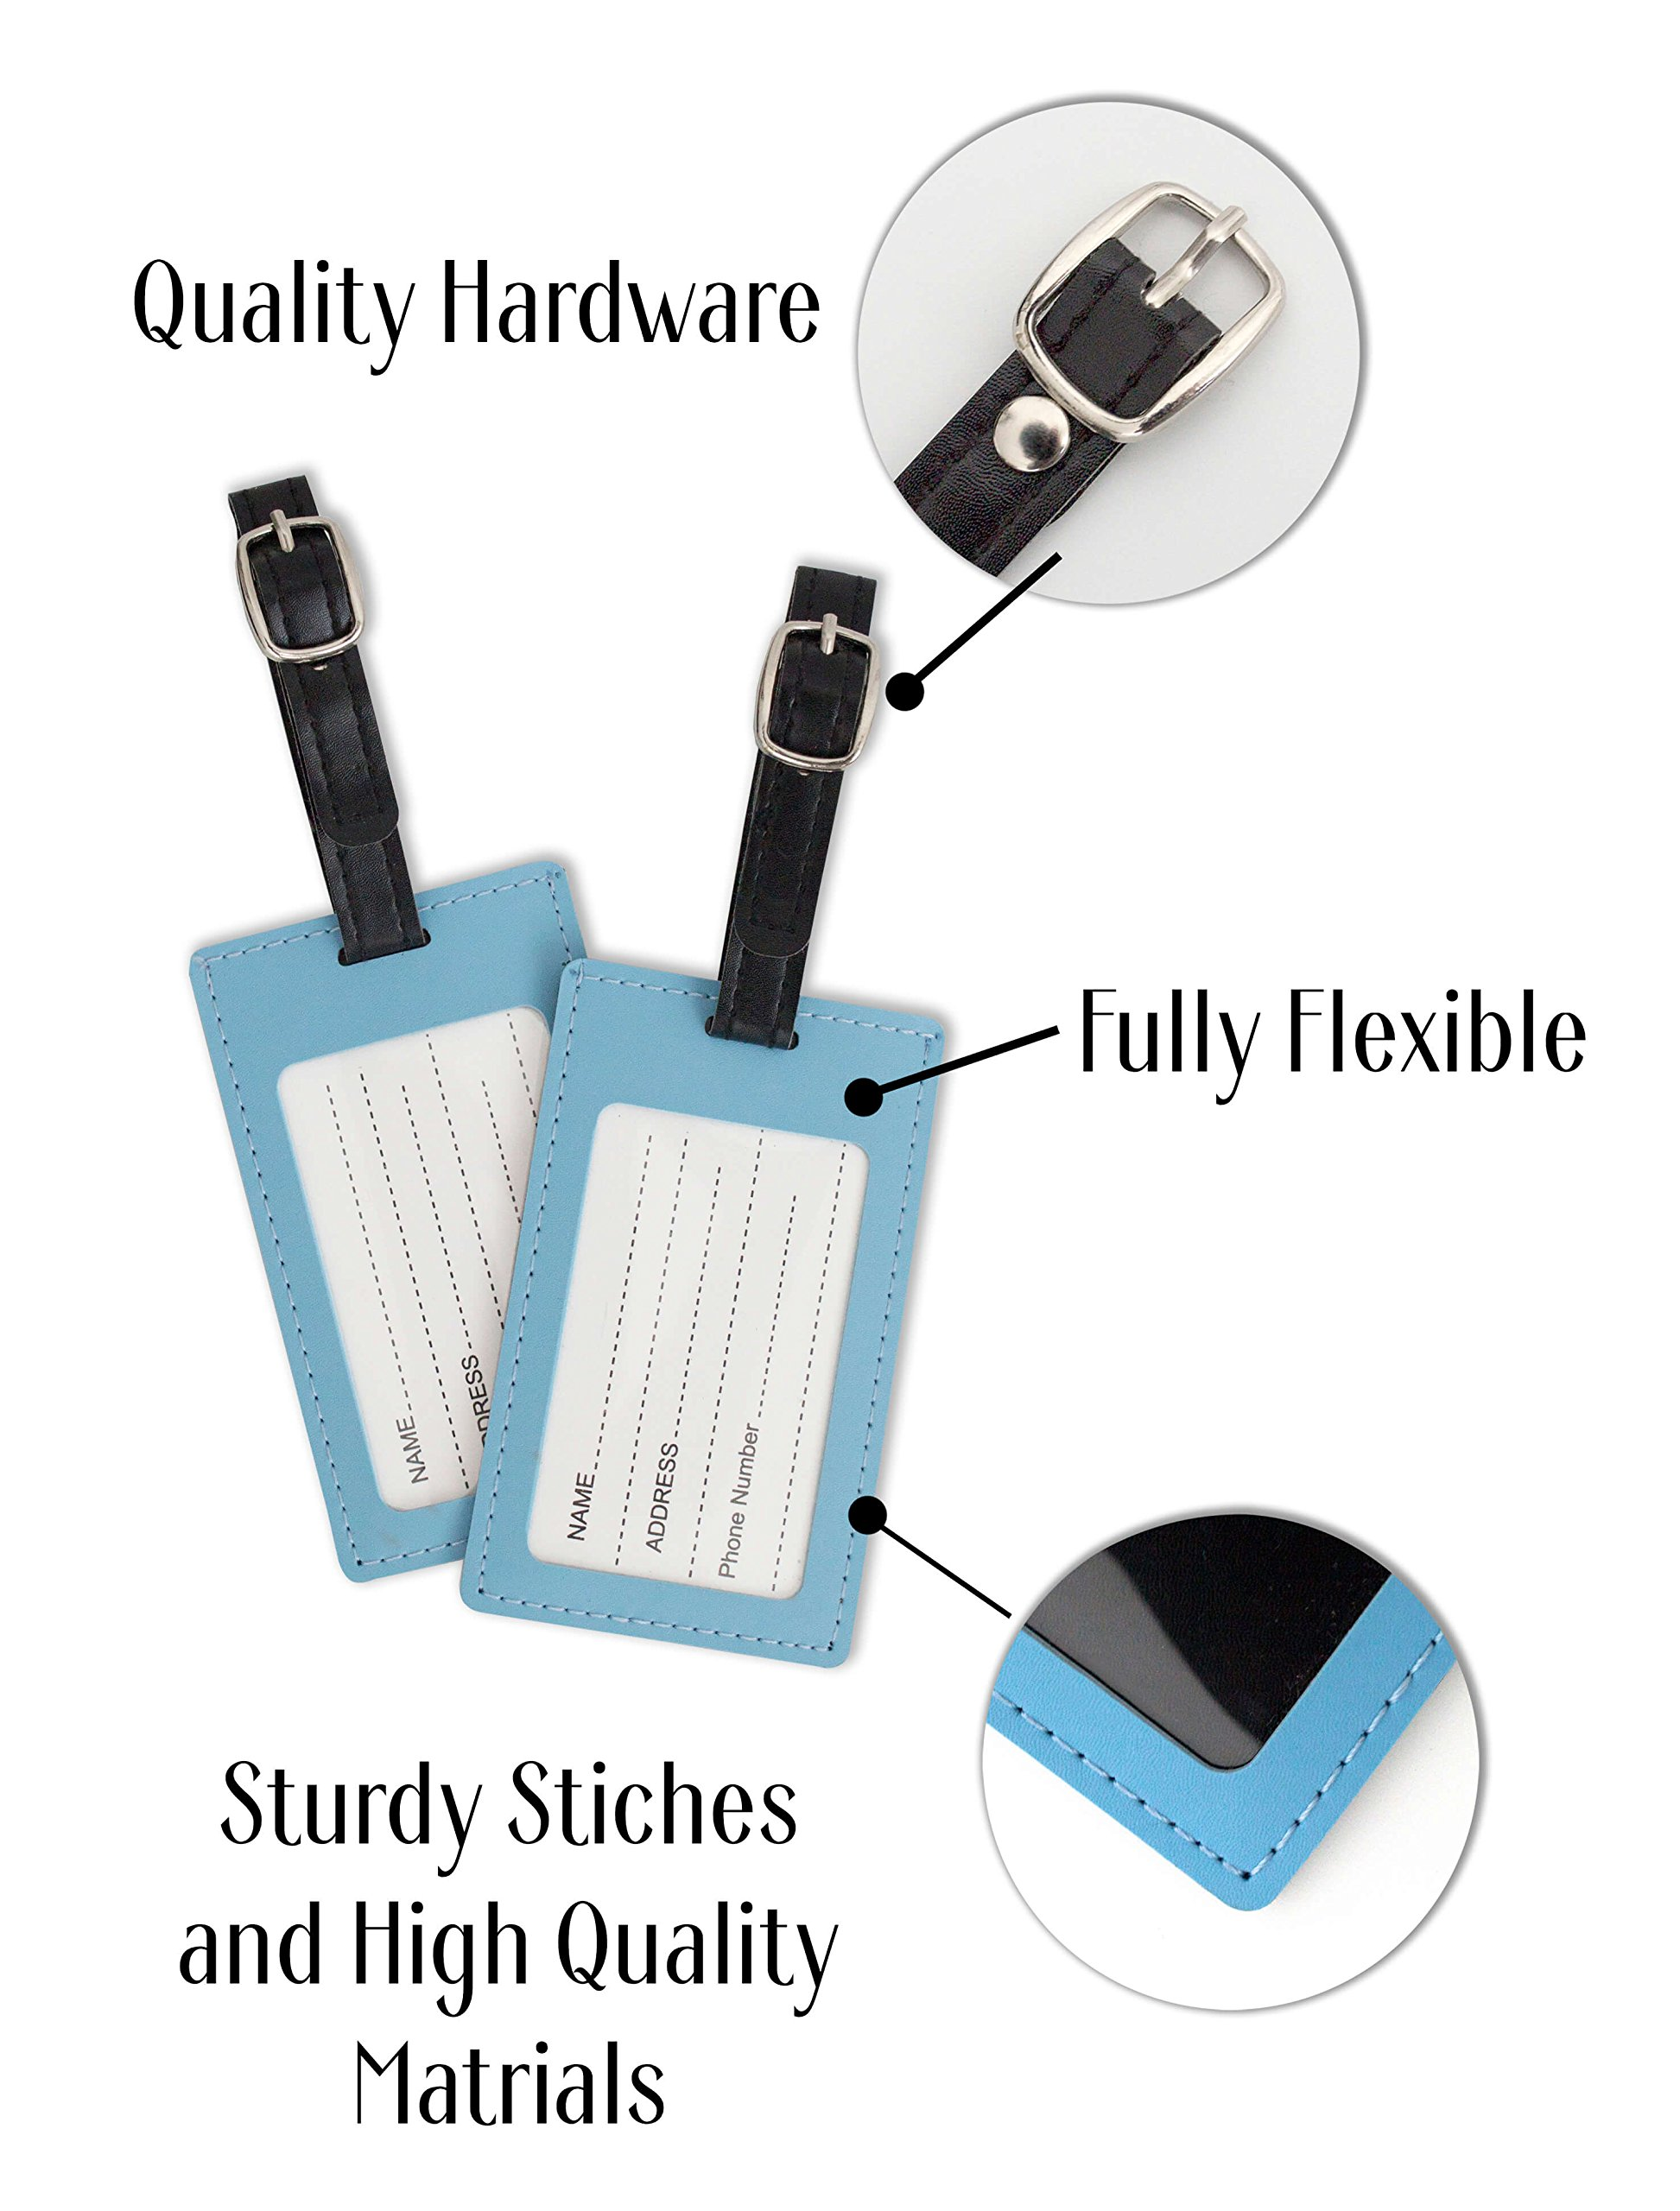 BURIUS Innovations Luggage Tags: Top 2-Pack Suitcase Tags/Travel Bag Identifiers